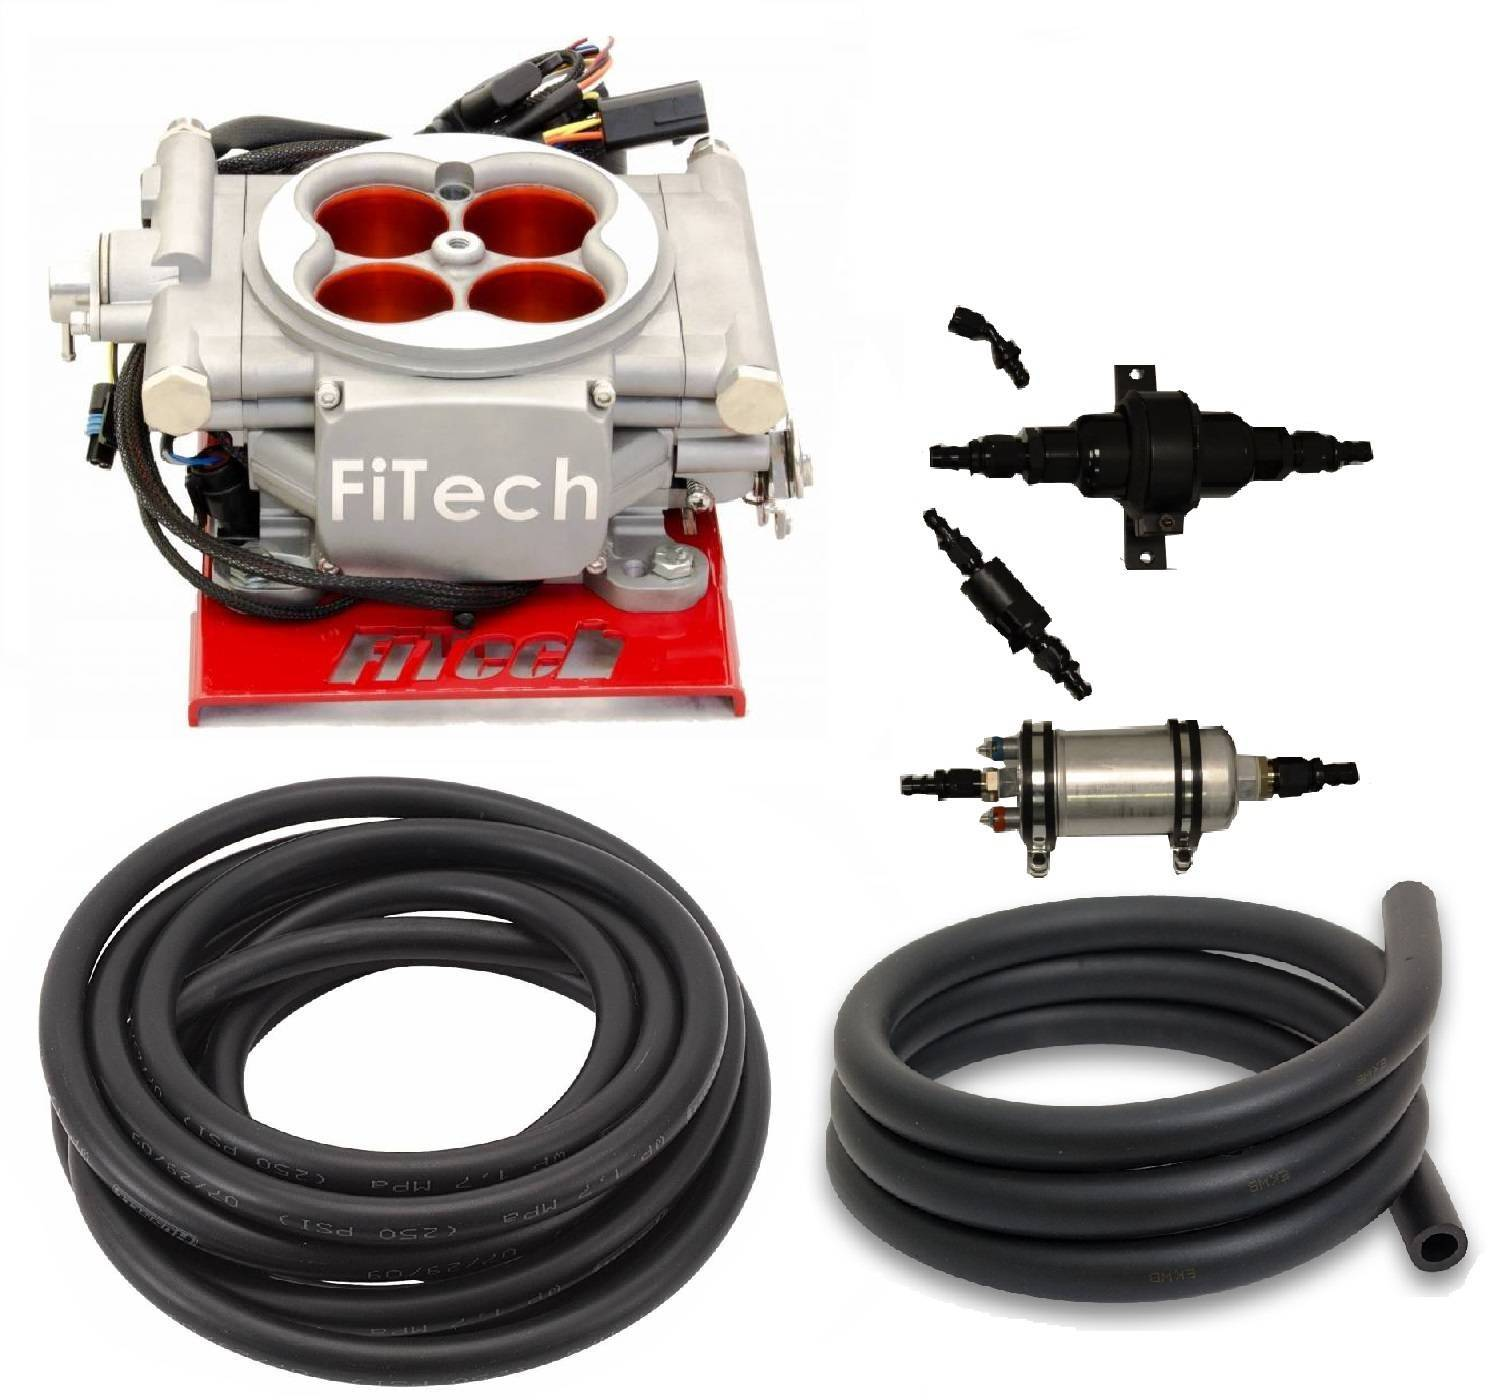 FTH-31003 - 400HP Carb Swap EFI Master Package with In-Line Fuel